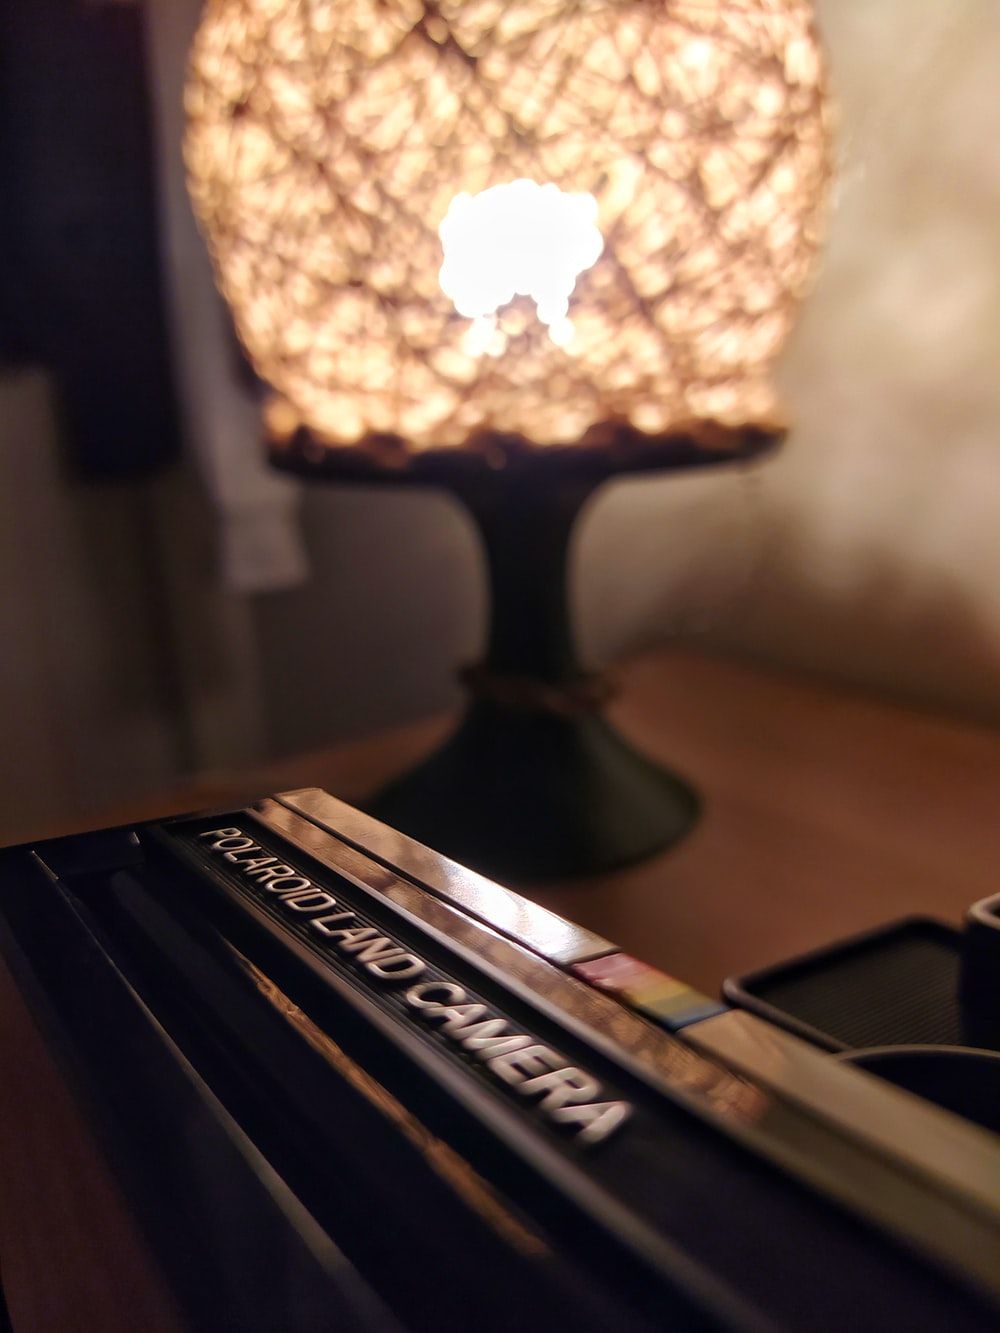 black and brown table lamp turned on on brown wooden table